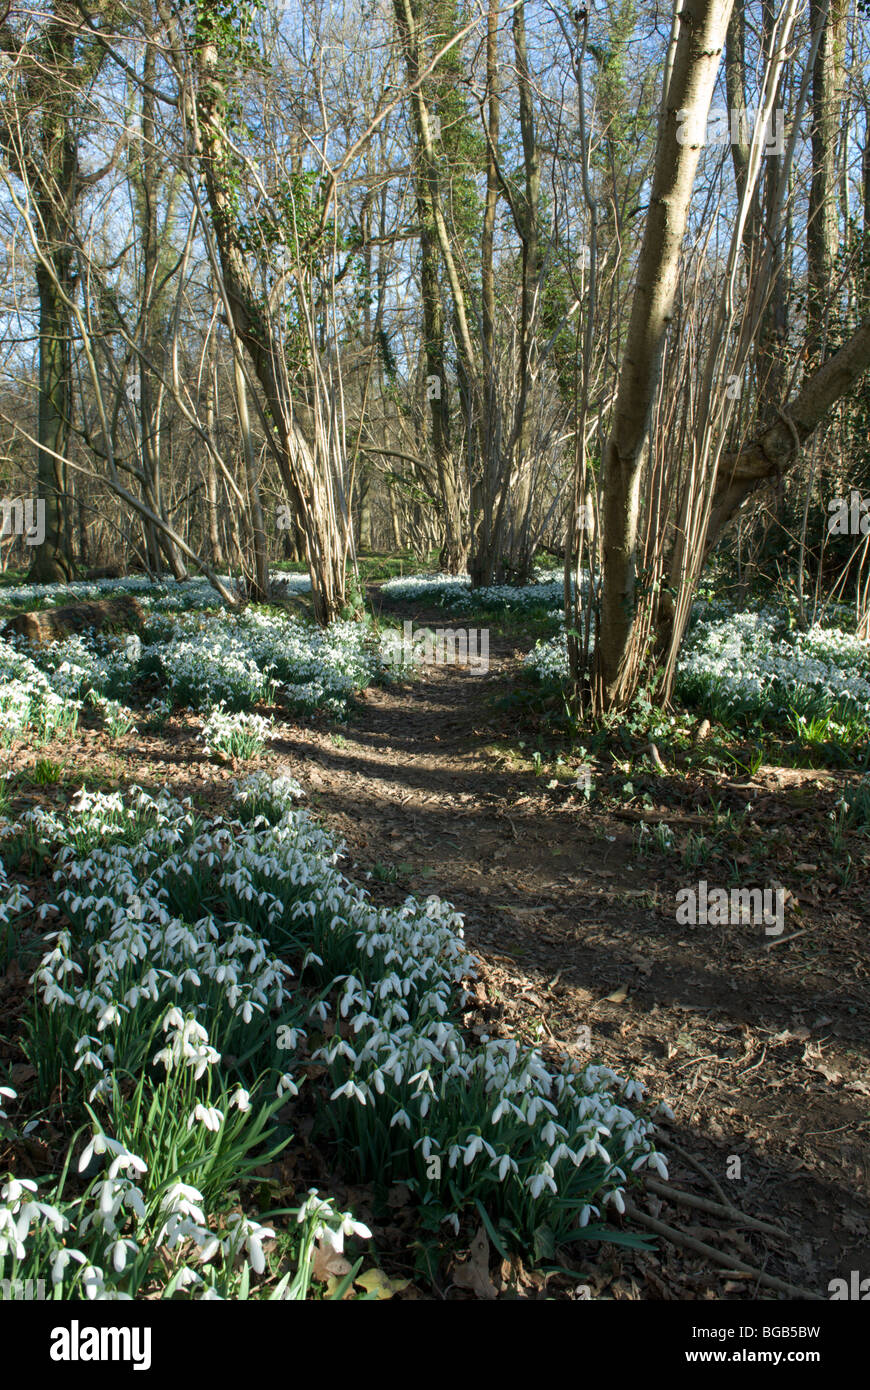 Snowdrop (Galanthus nivalis) massed in old hazel coppice near Petworth, West Sussex, UK. February. - Stock Image